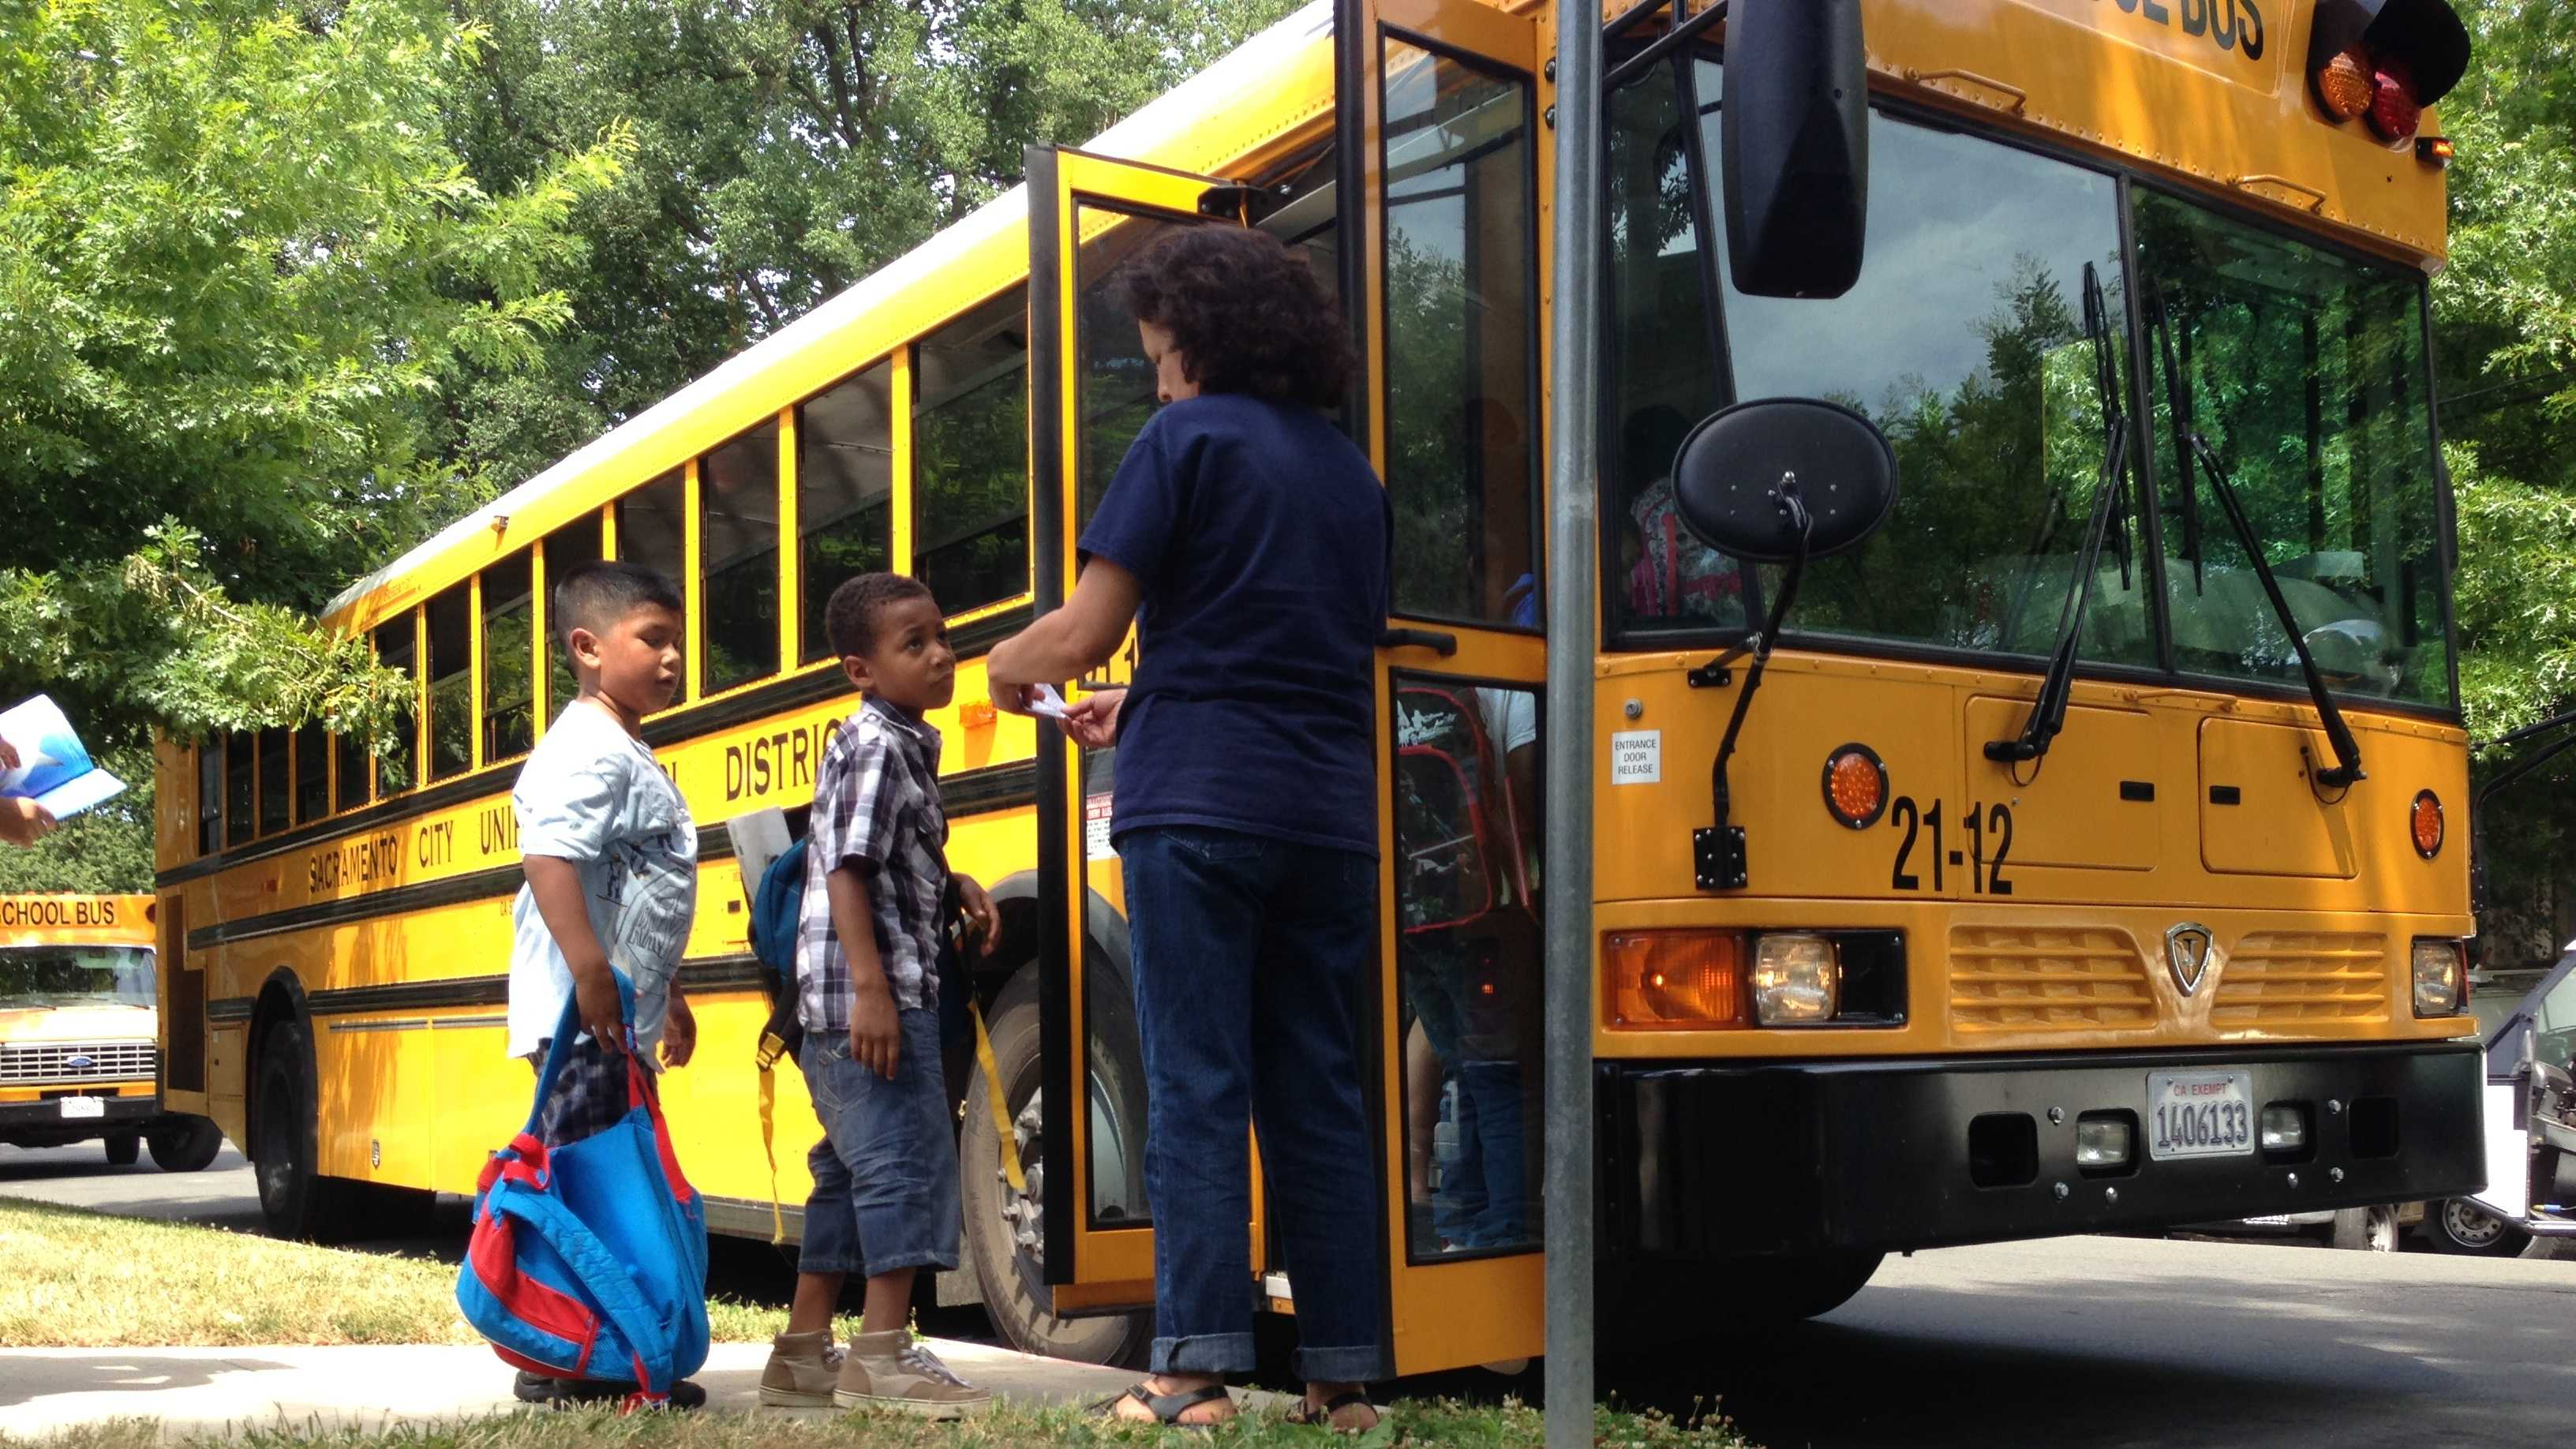 Students board buses at Washington Elementary School in Sacramento, one of seven schools slated for closure this fall (June 11, 2013).